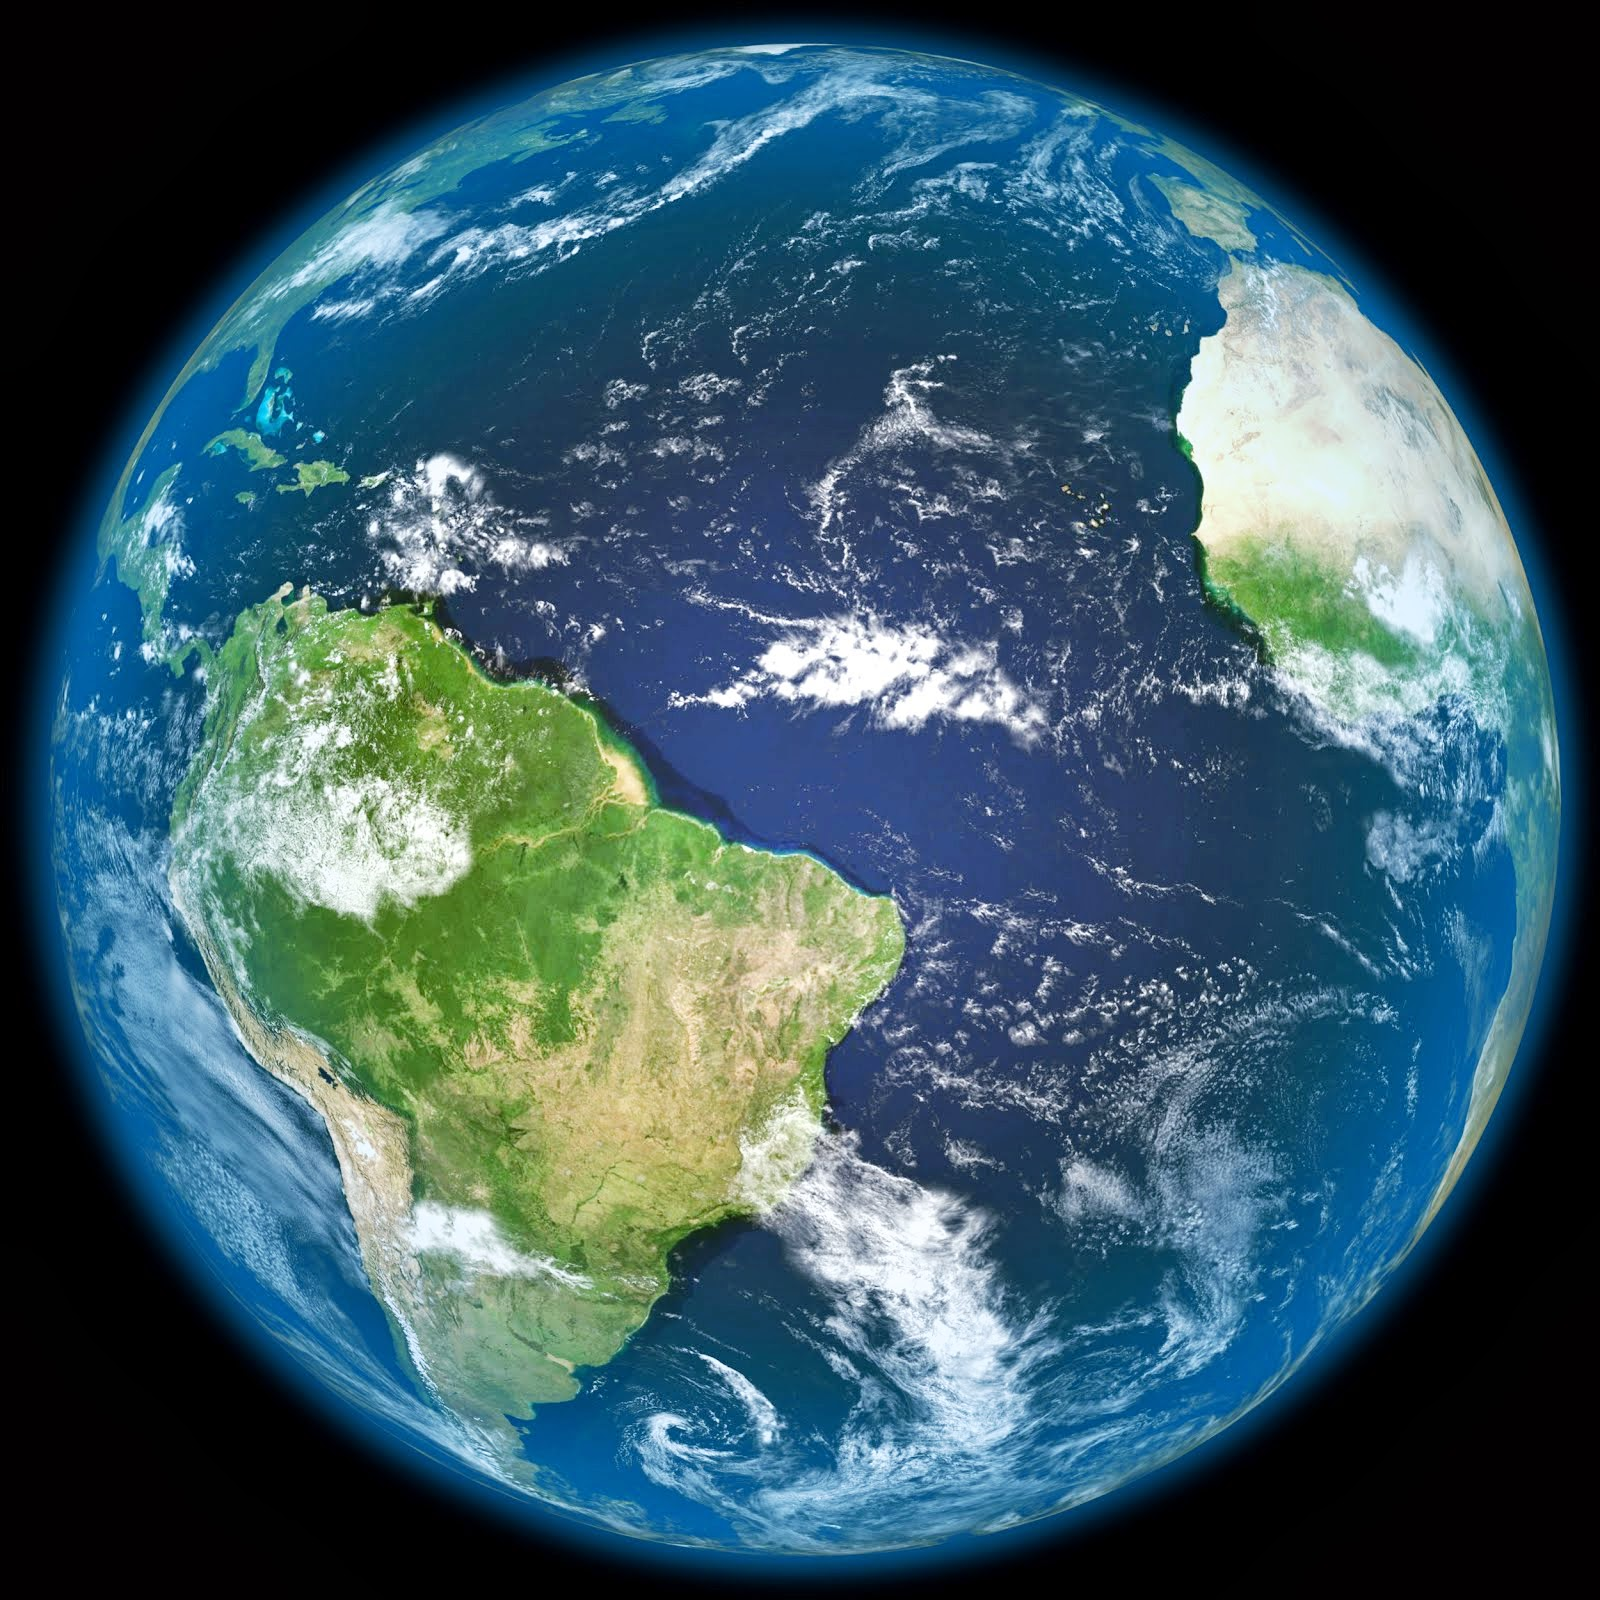 Images earth from space space wallpaper - Earth from space wallpaper ...